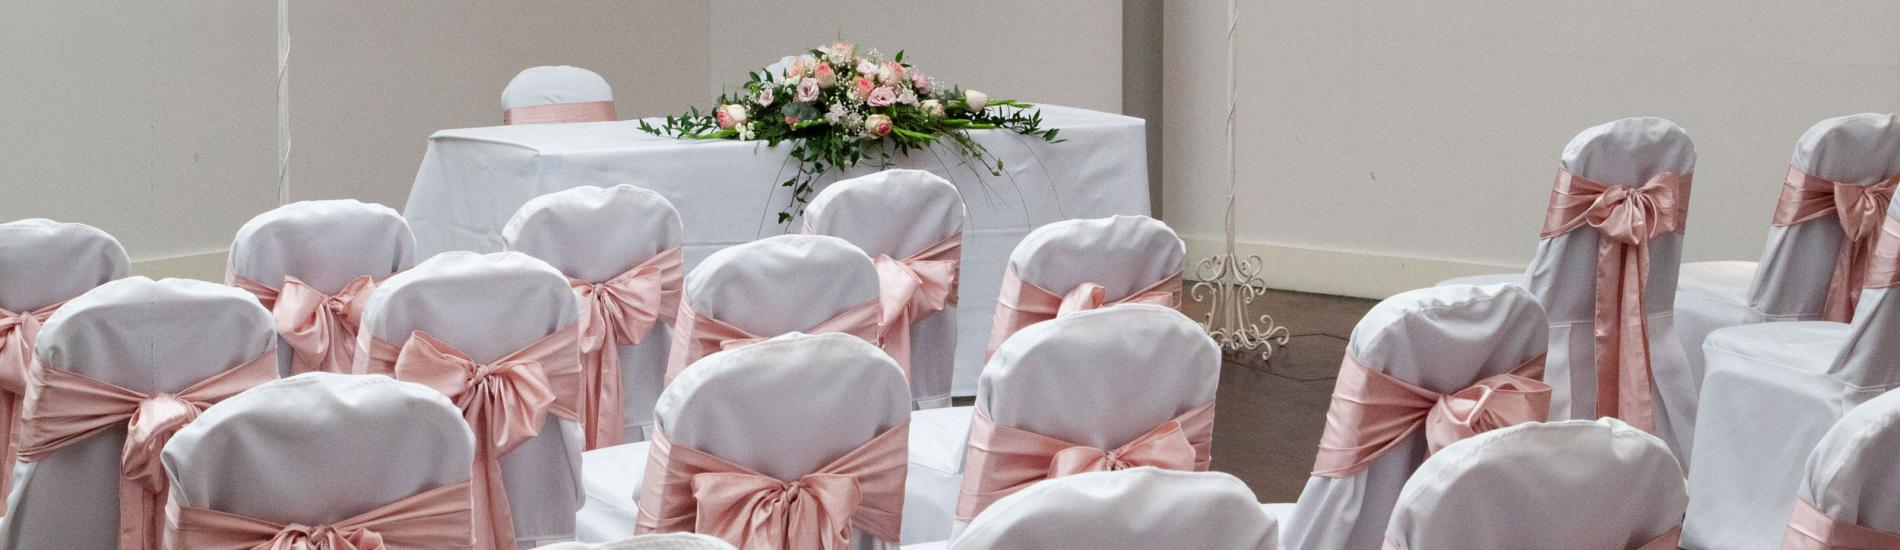 White Hart Hotel Lincoln Weddings Venue